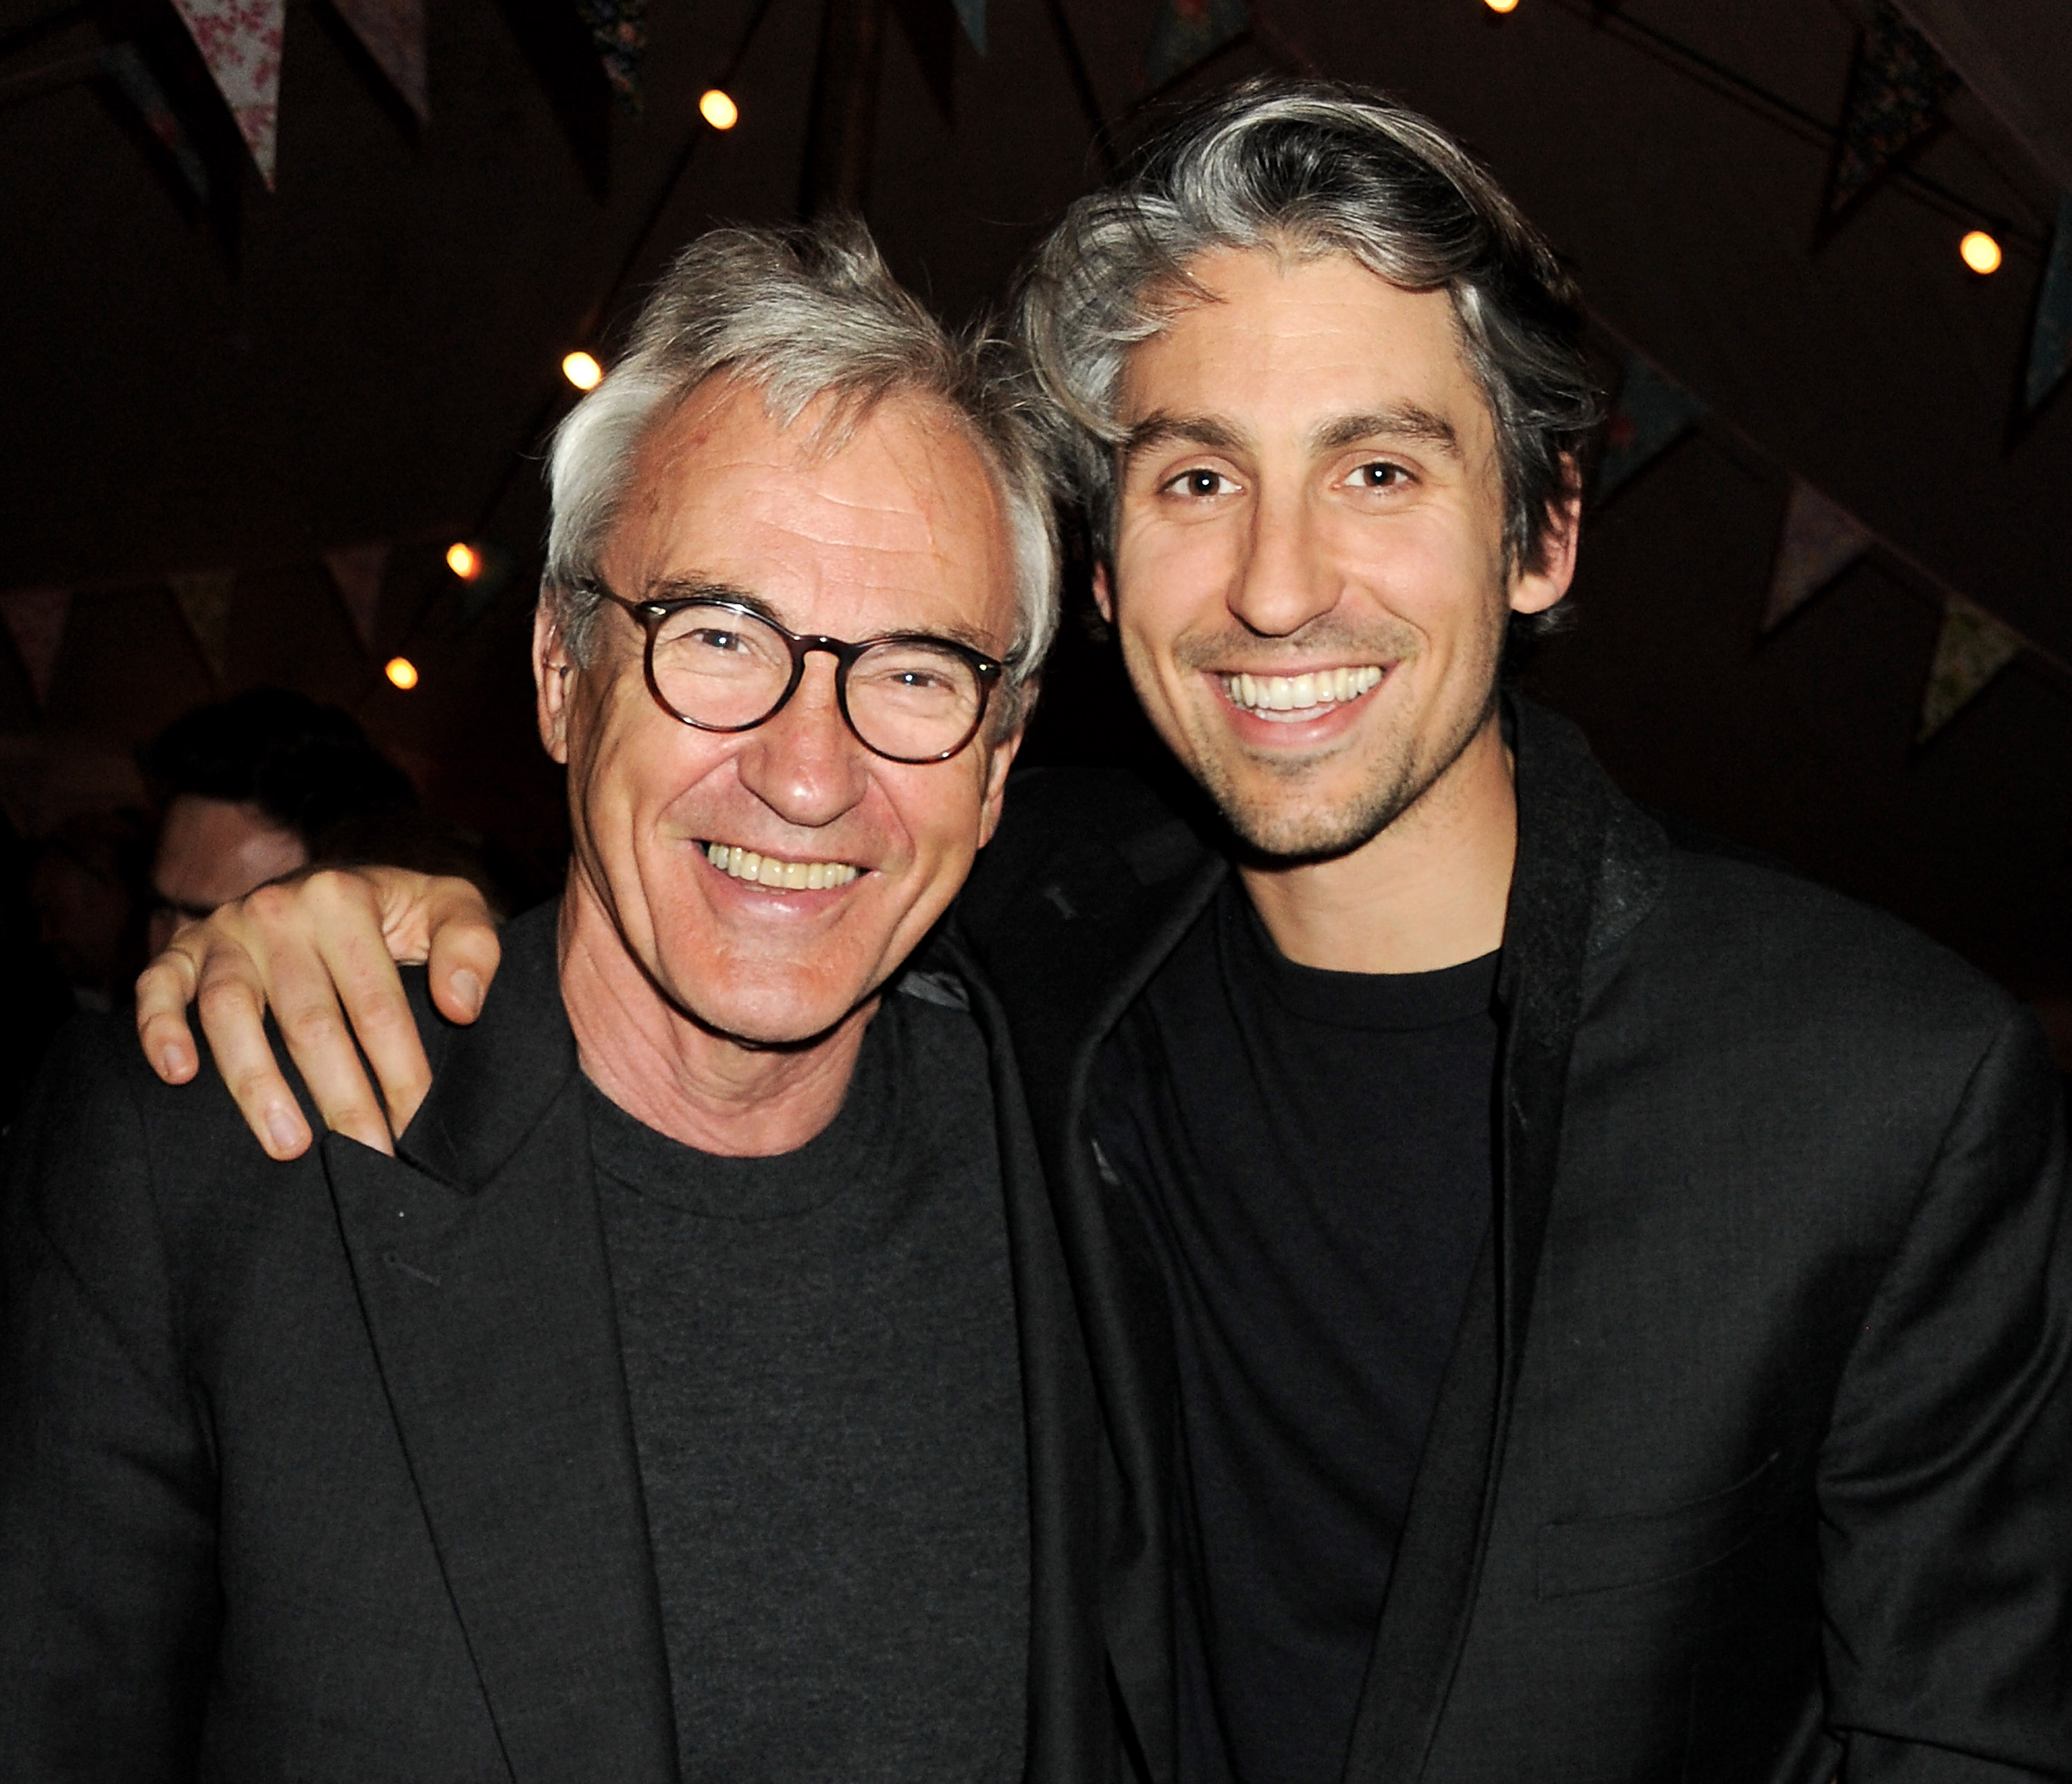 I'm A Celebrity 2016: Larry Lamb's family found it hard to let him go on the show because of his malaria battle